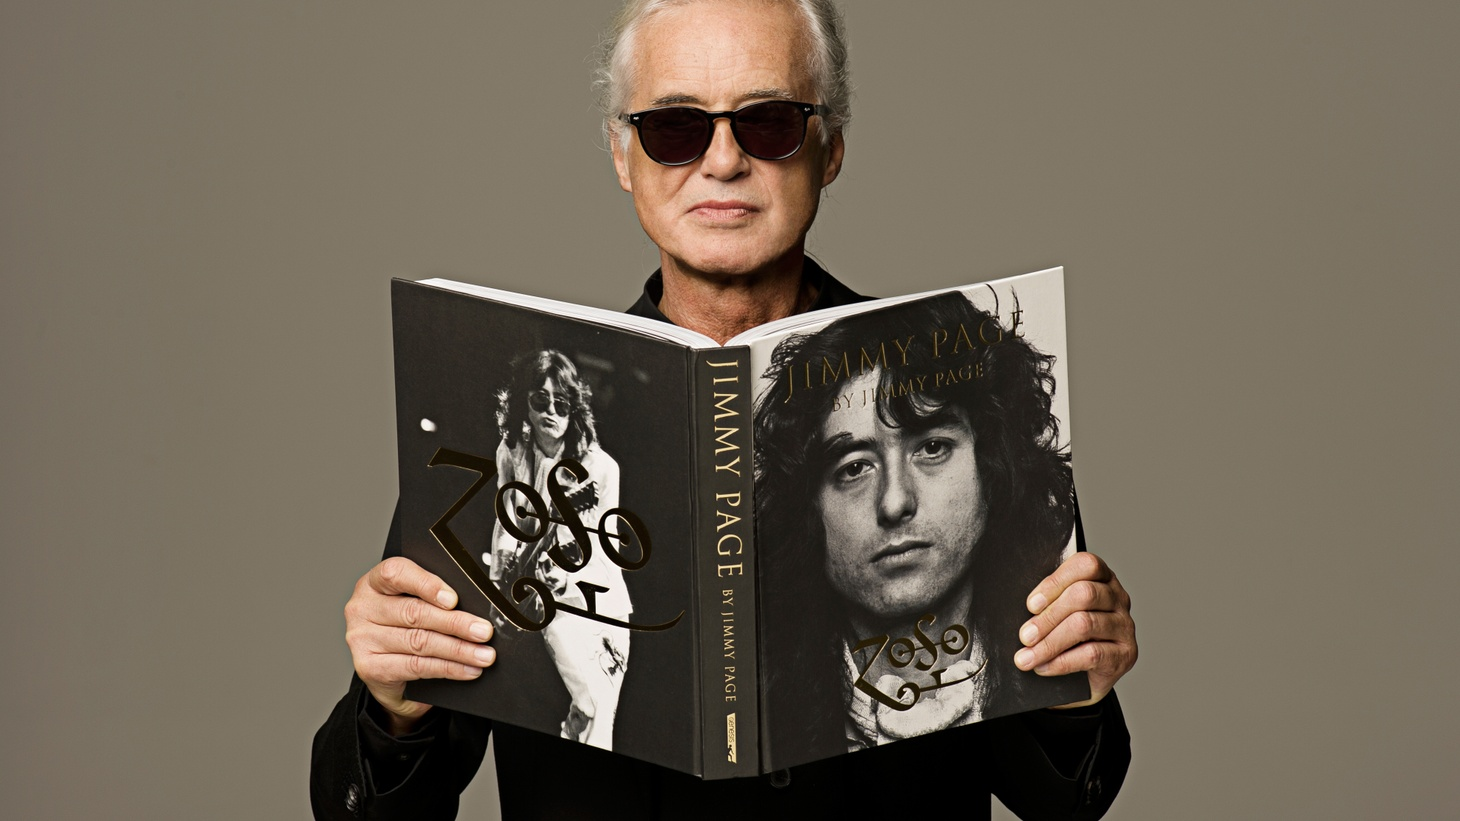 Iconic guitarist and Led Zeppelin founding member Jimmy Page gives us insight into his new book and life with the band on Morning Becomes Eclectic at 11:15am.